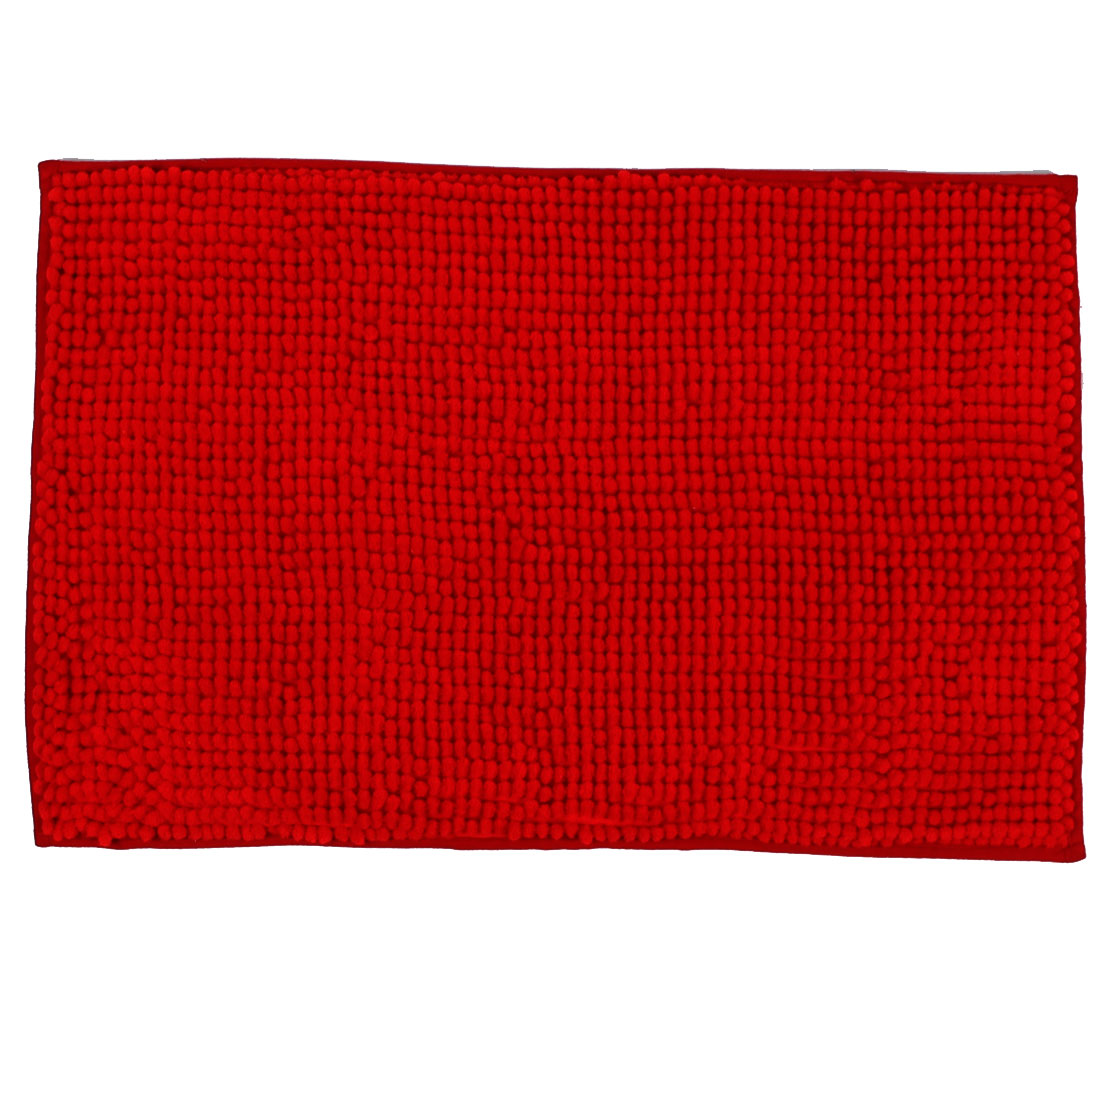 Household Bathroom Soft Slip Resistant Absorbent Bath Mat Carpet Red 24 x 16 Inch